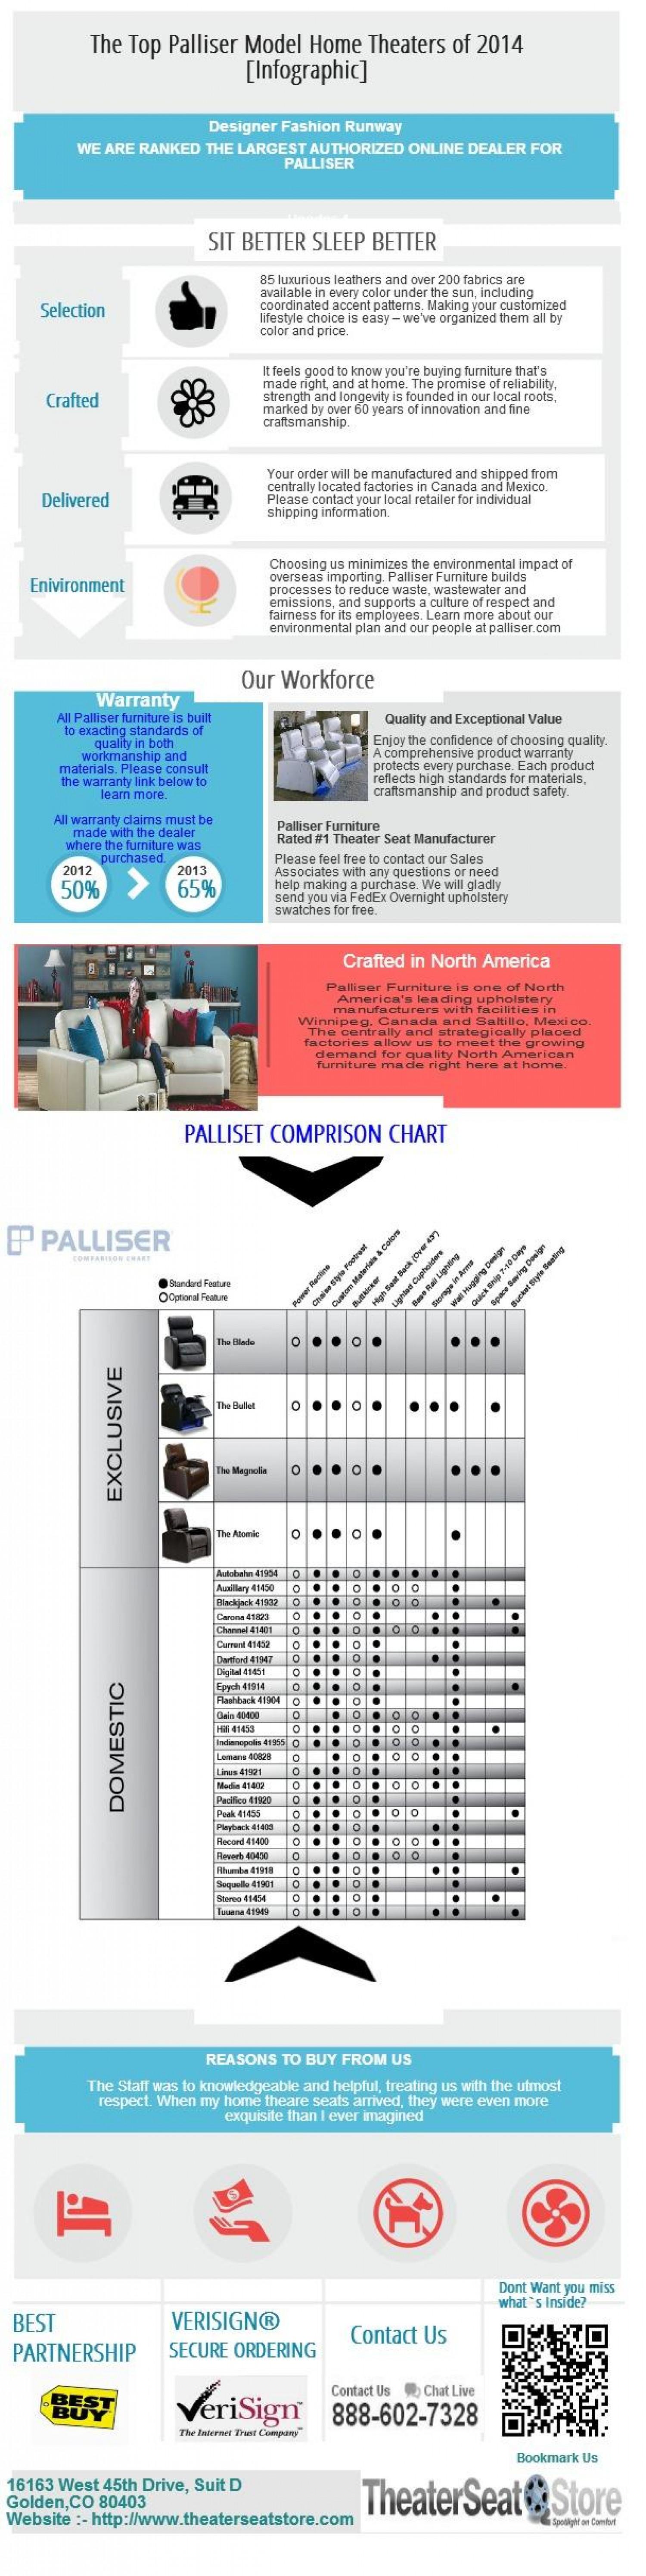 The Top Palliser Model Home Theaters of 2014 [Infographic] Infographic